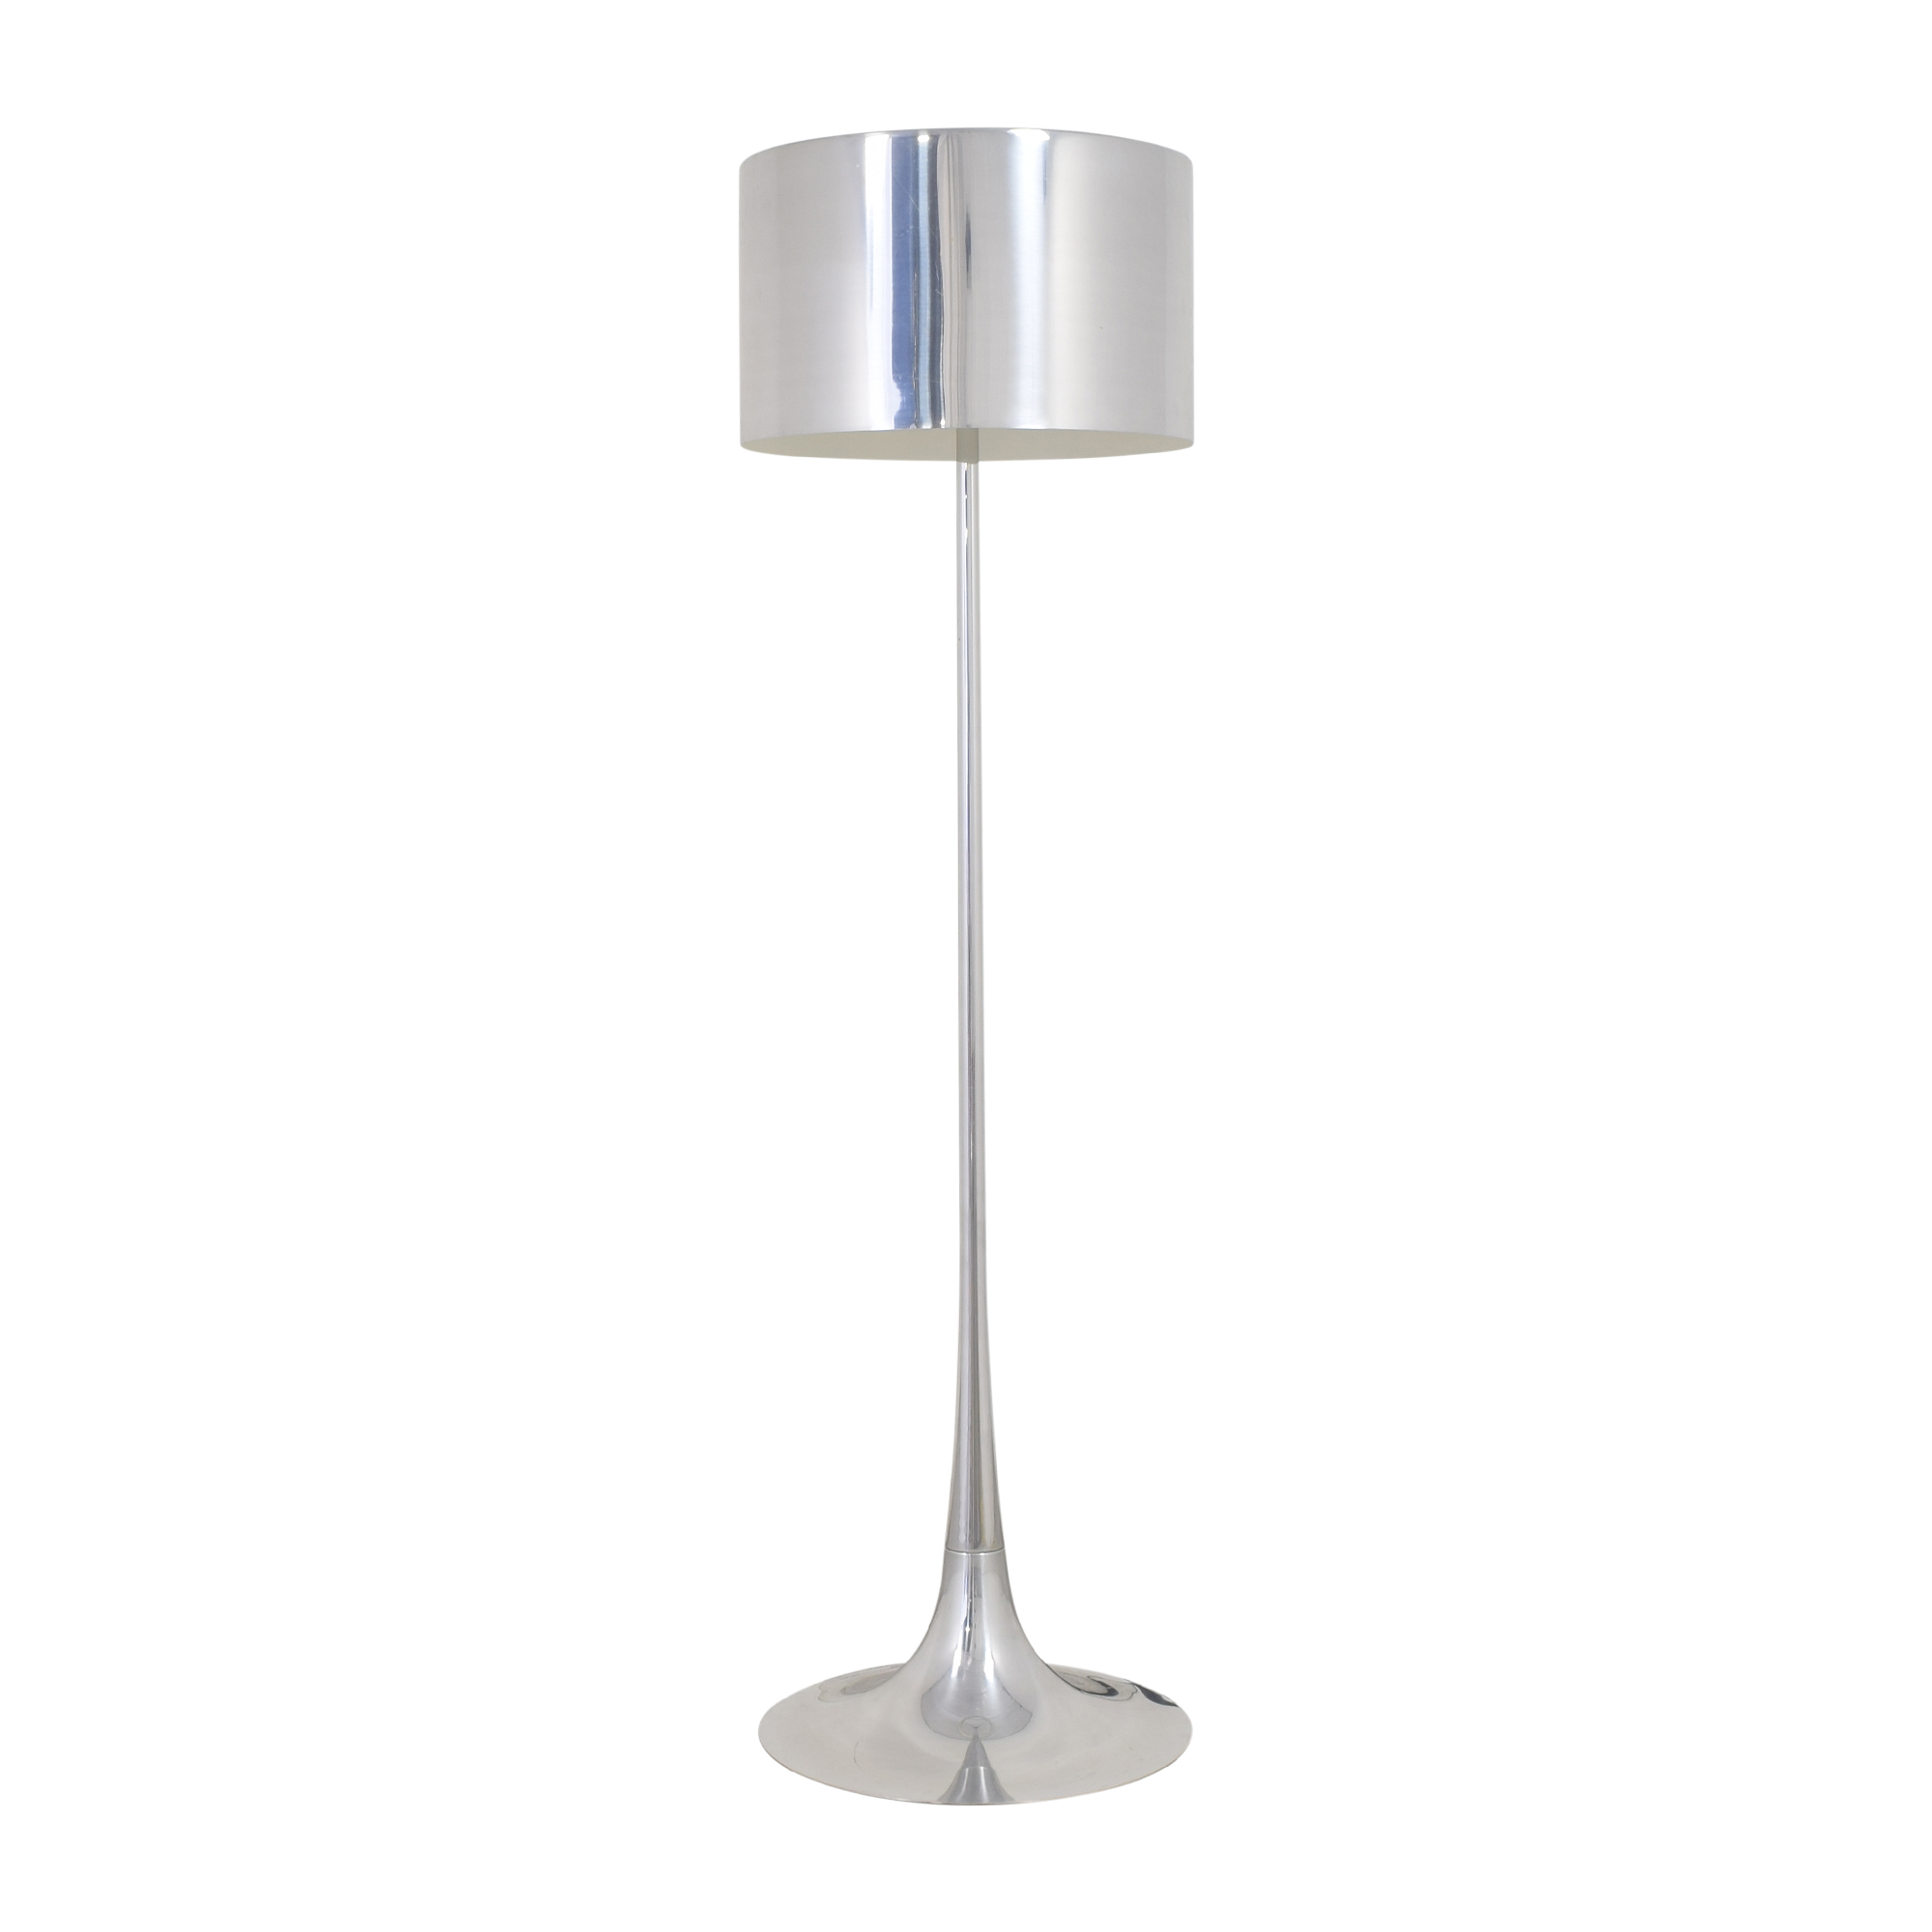 FLOS FLOS Spun Floor Lamp for sale